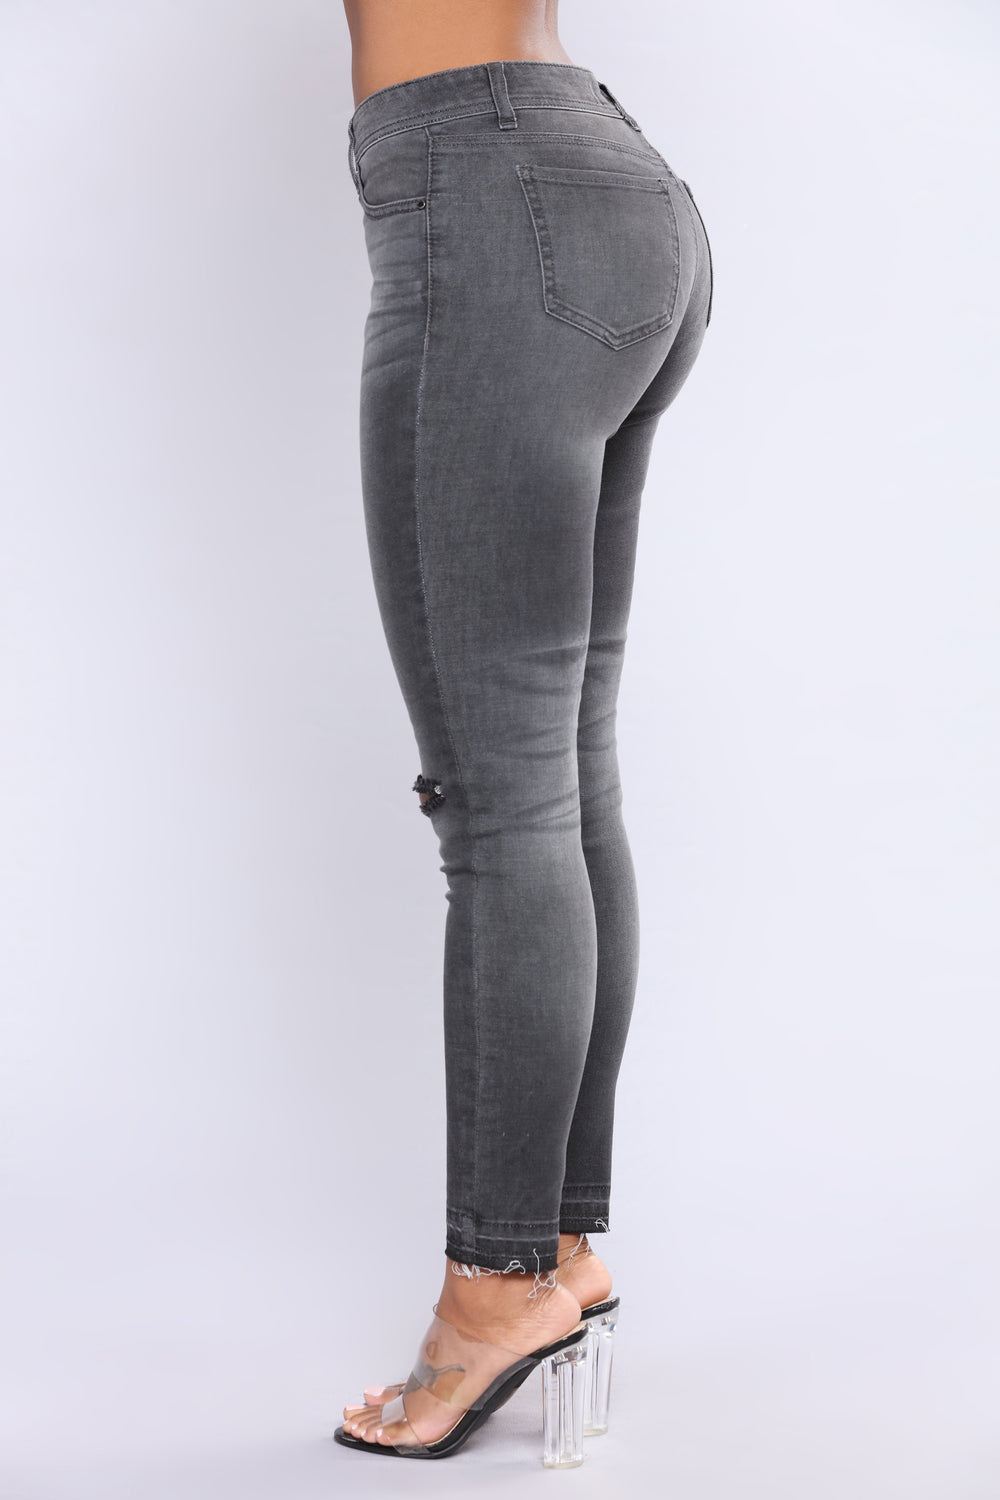 Fleeting Moment Skinny Jeans - Grey